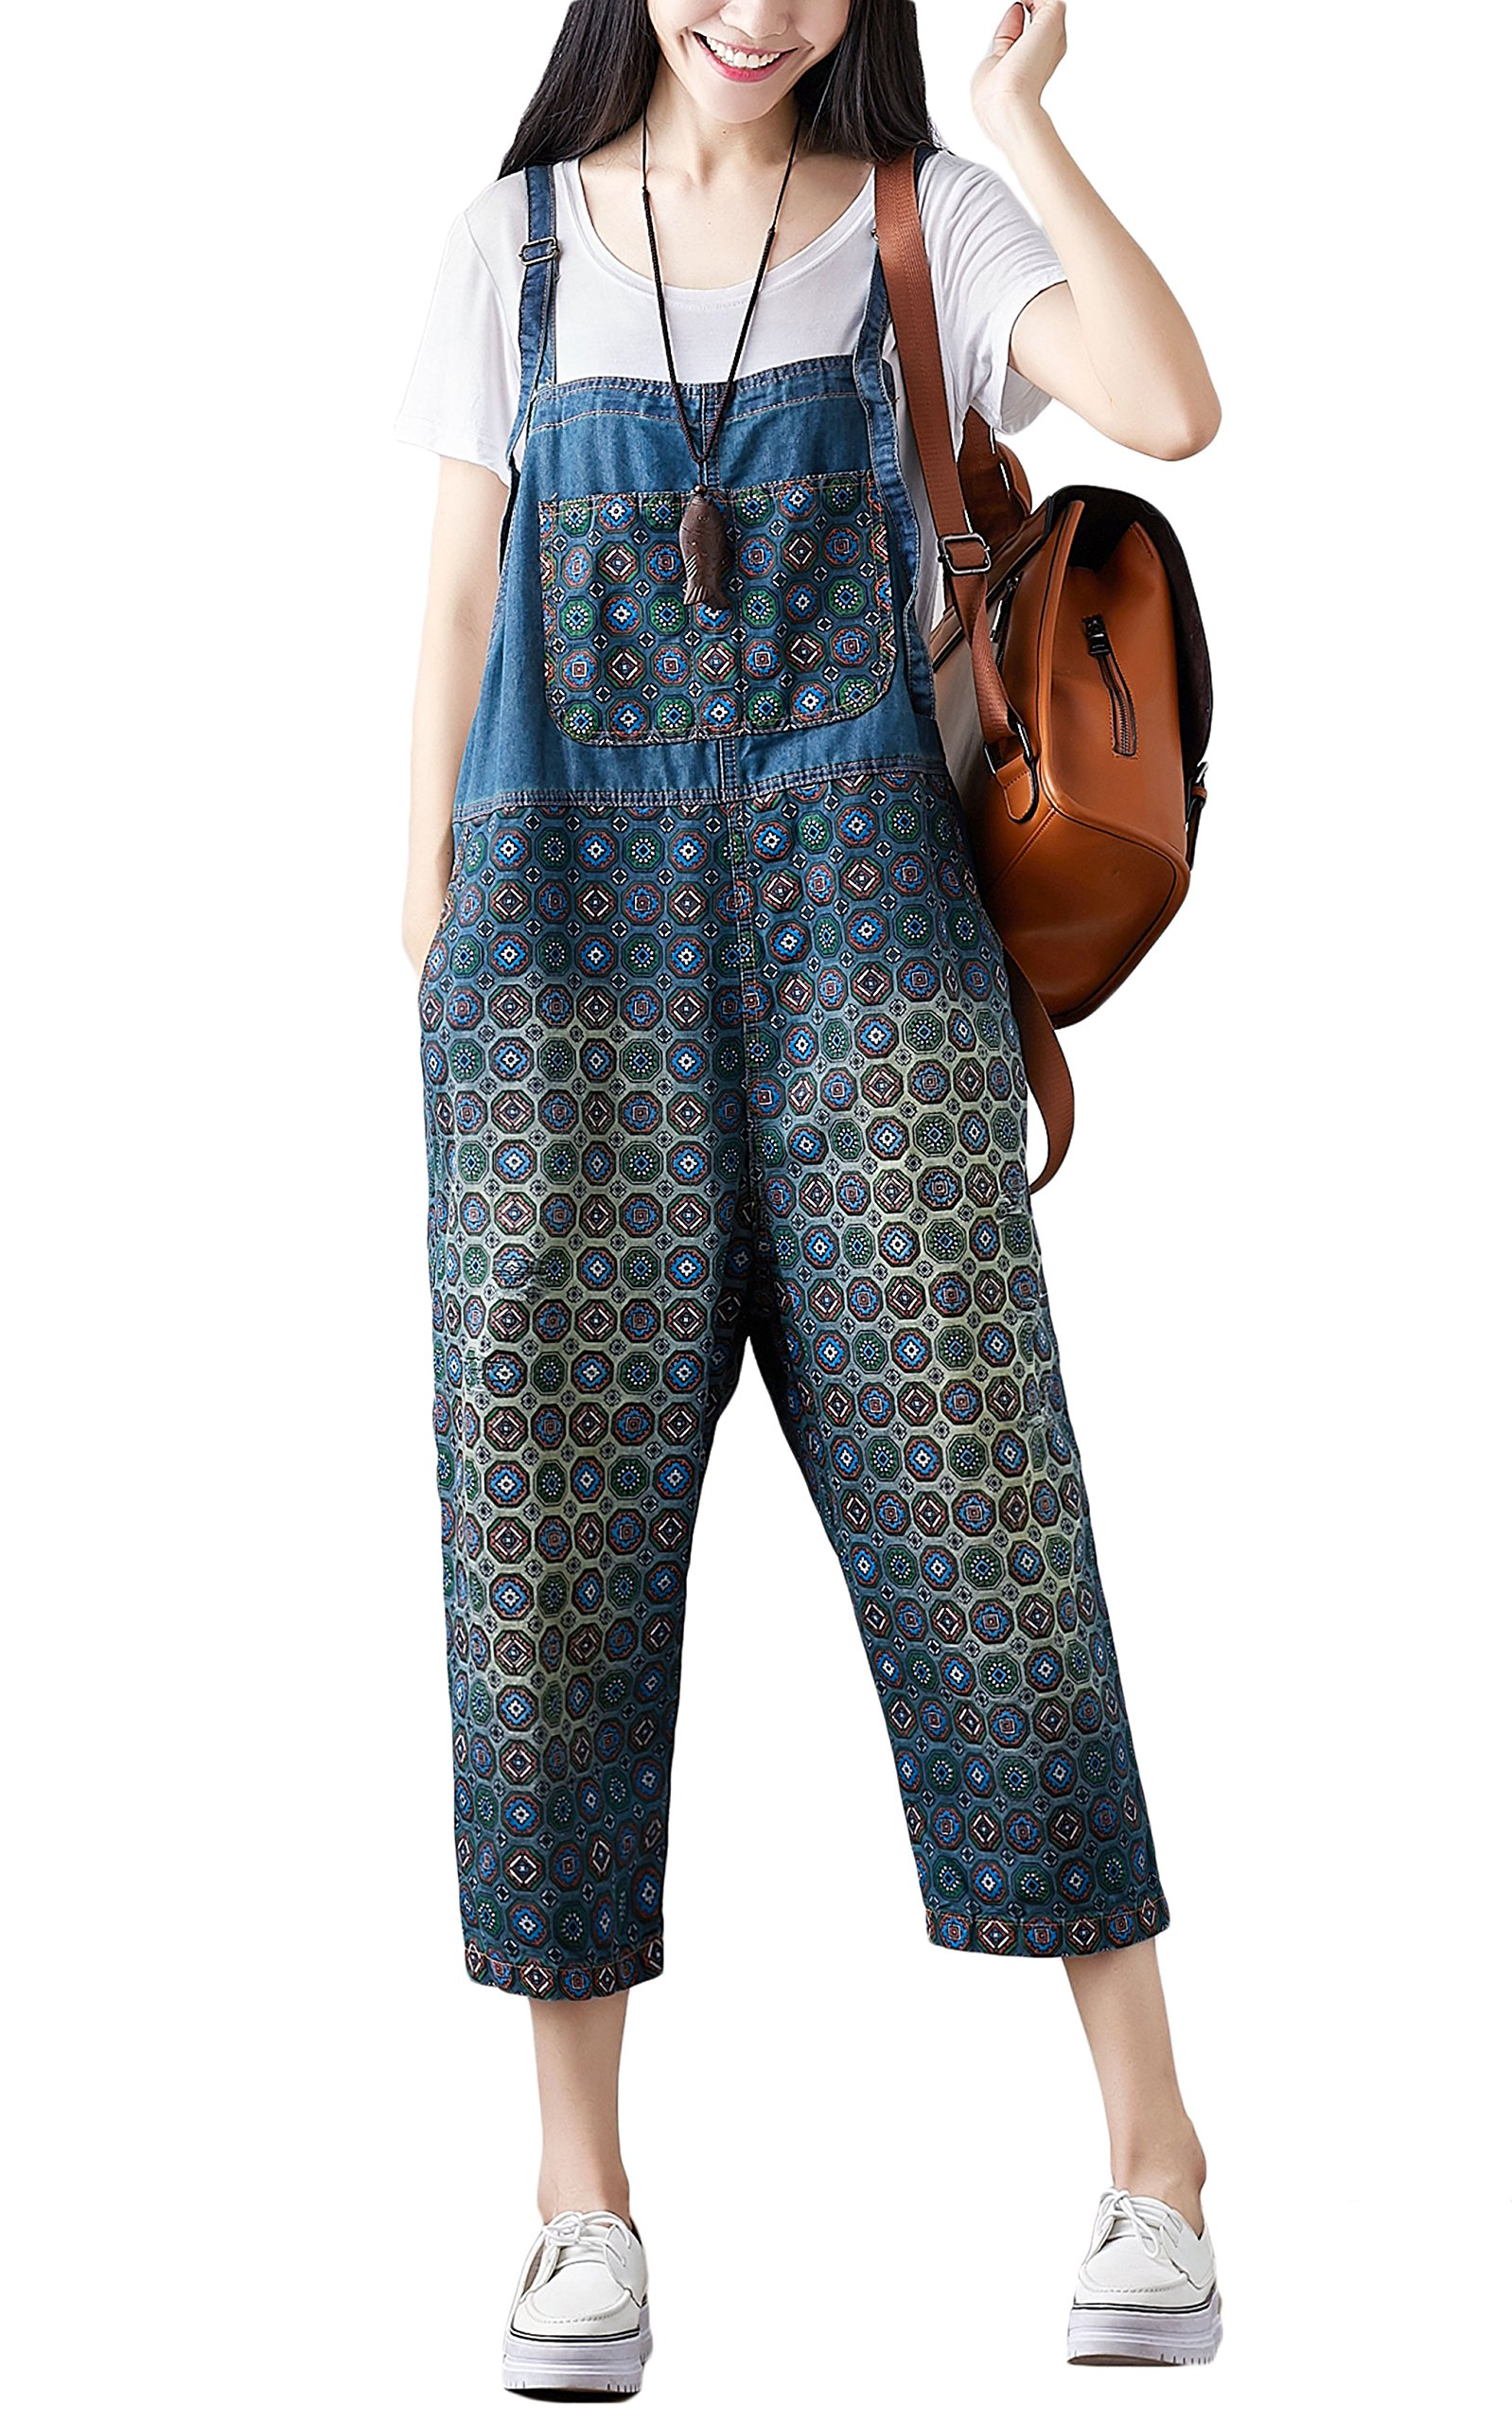 Soojun Women's Cotton Casual Printed Baggy Bib Overalls, 3 Blue